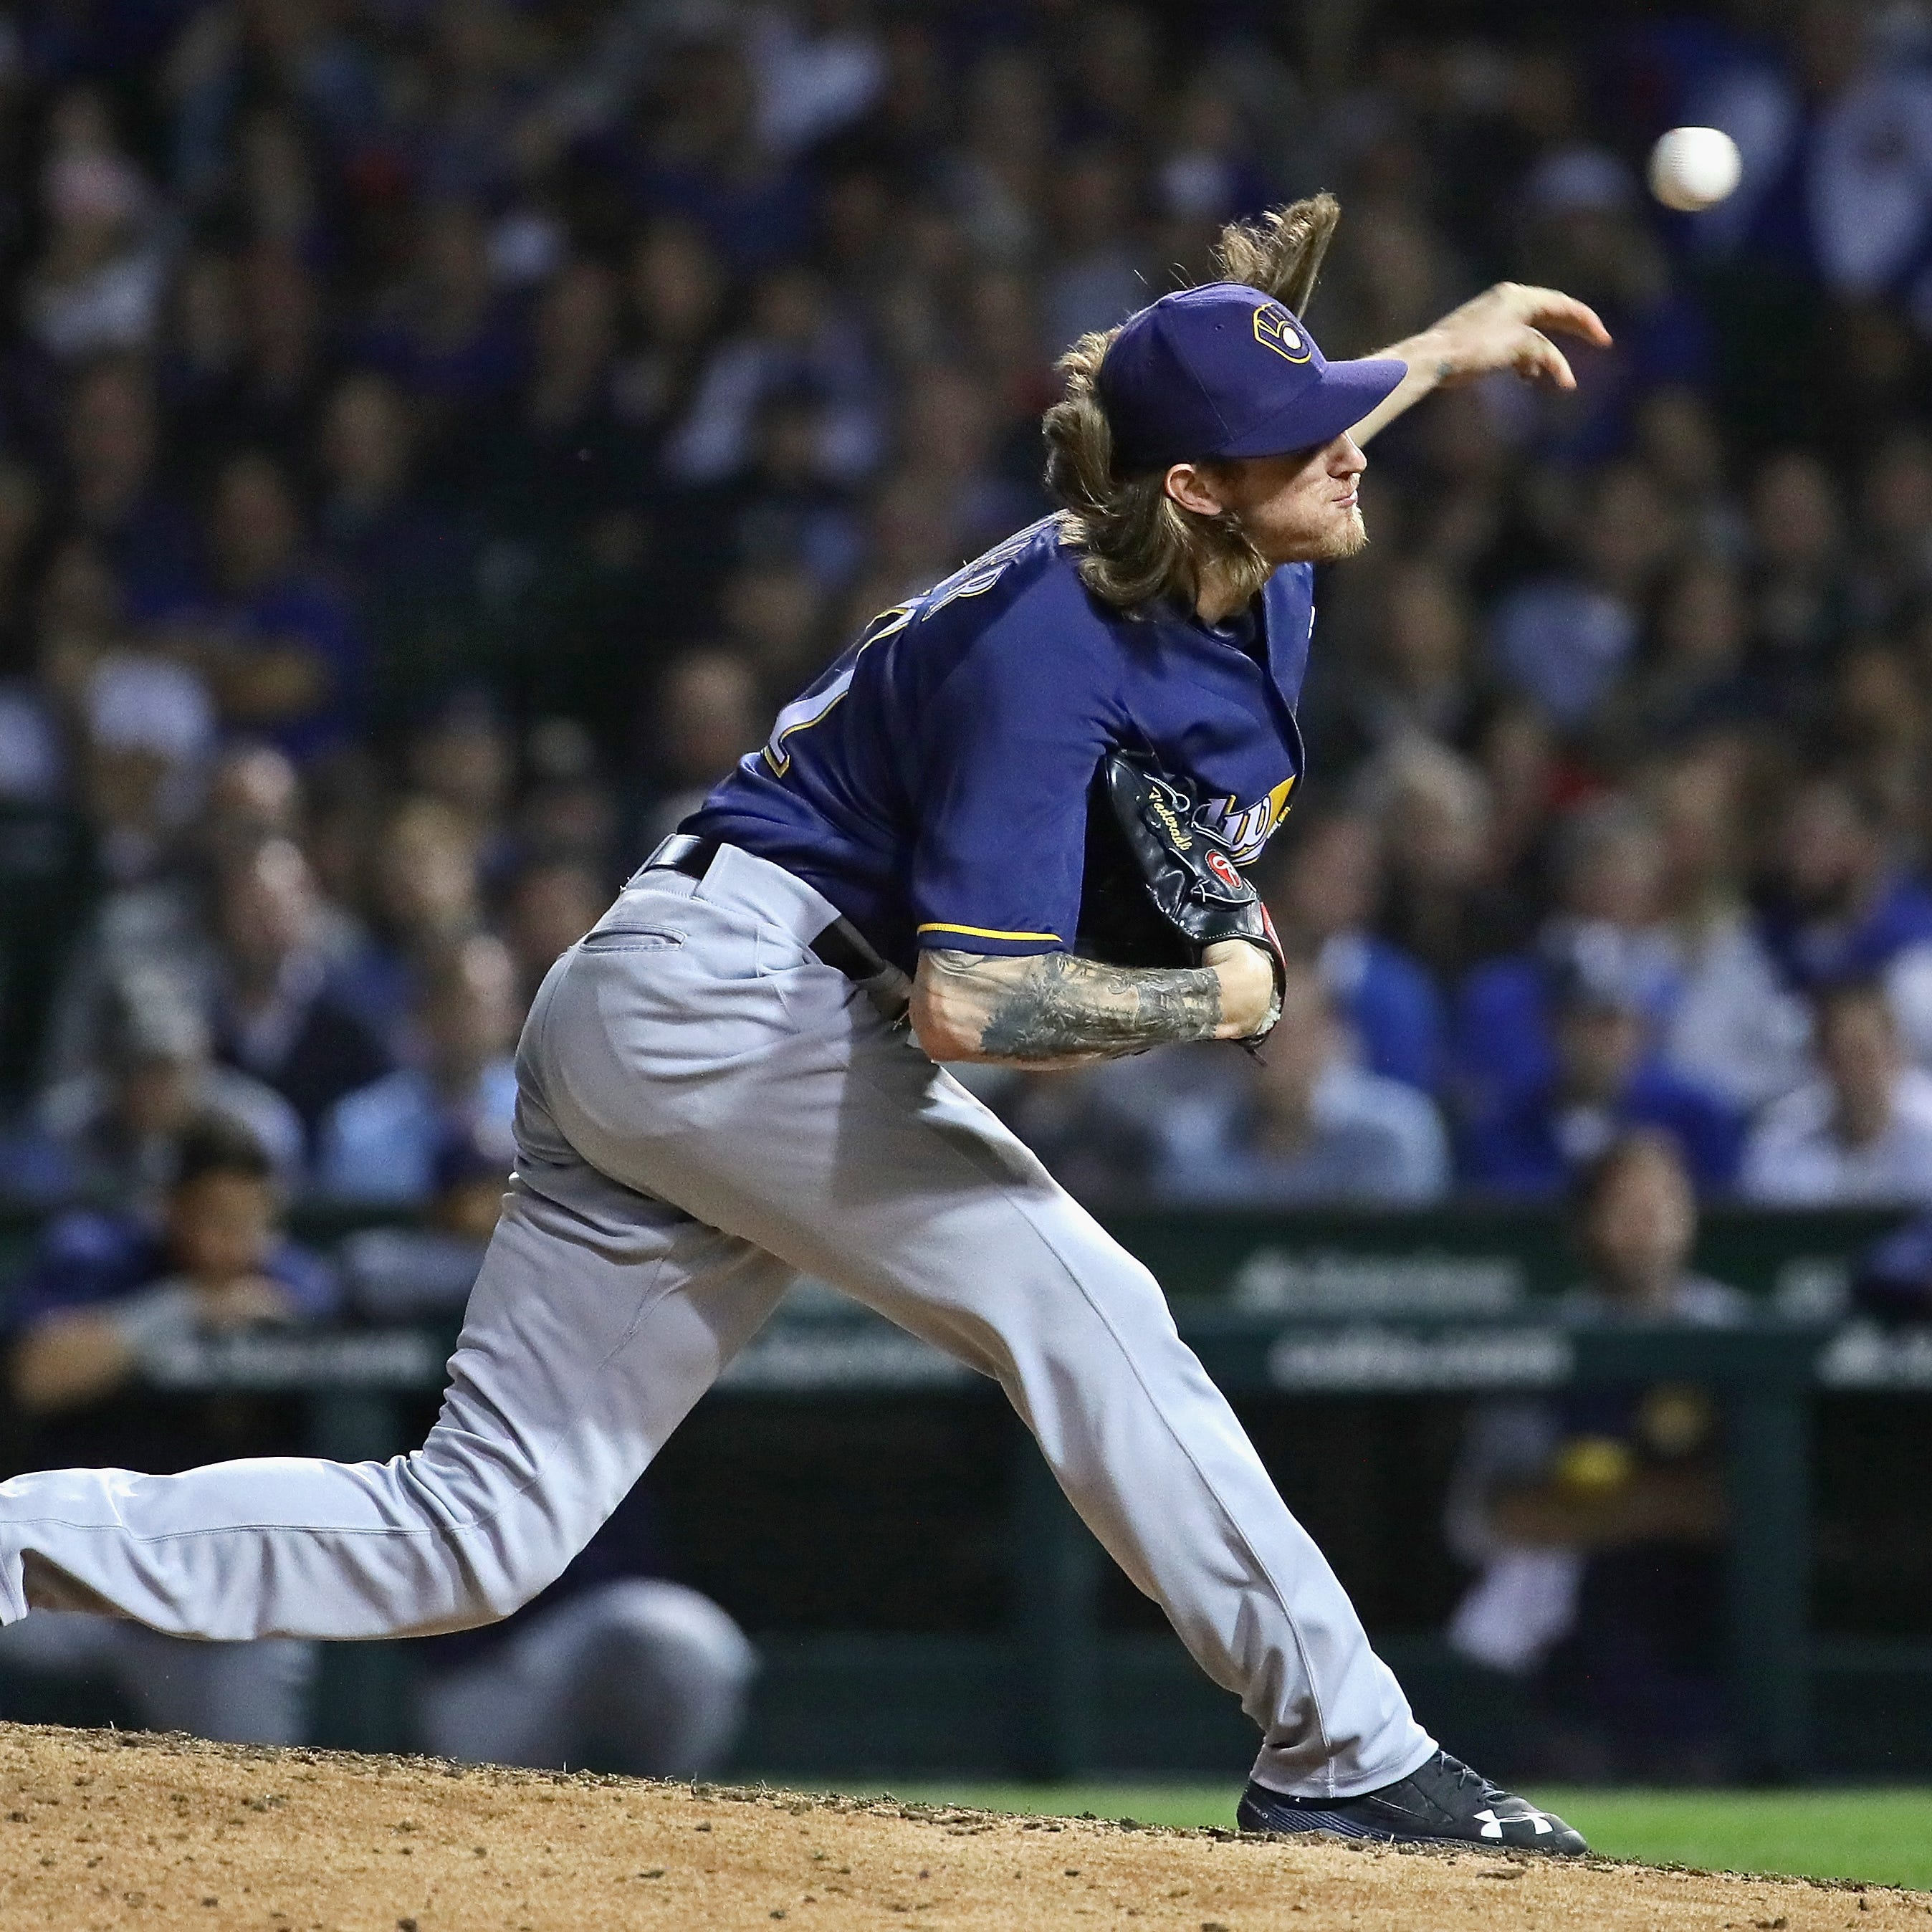 Josh Hader continues to rewrite the major-league record book for relievers